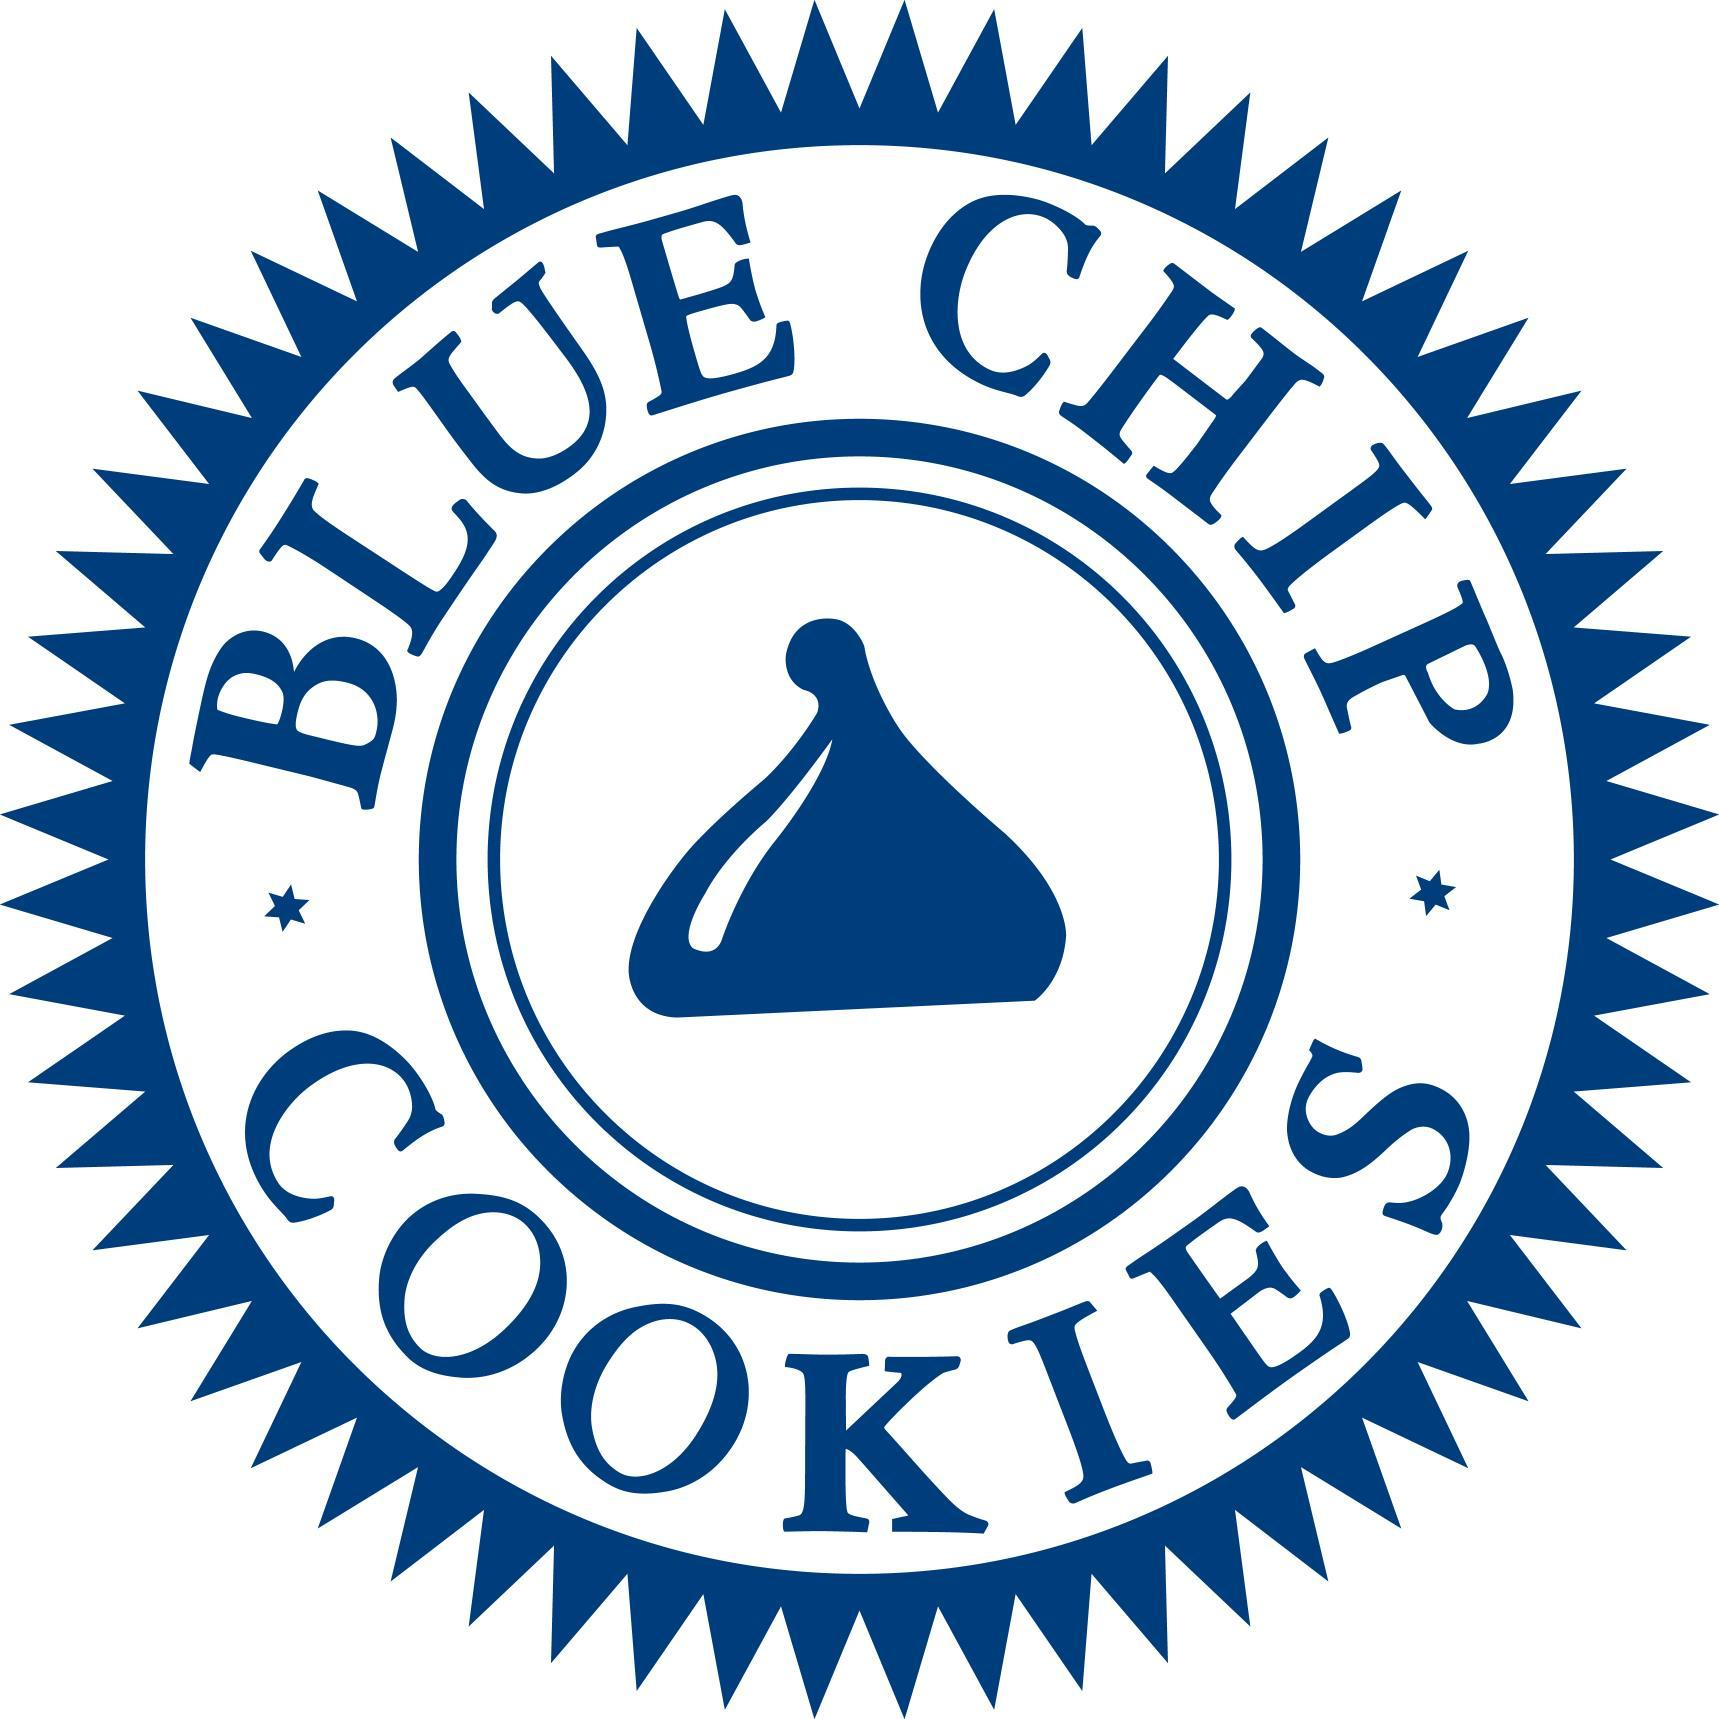 Blue Chip Cookie Logo